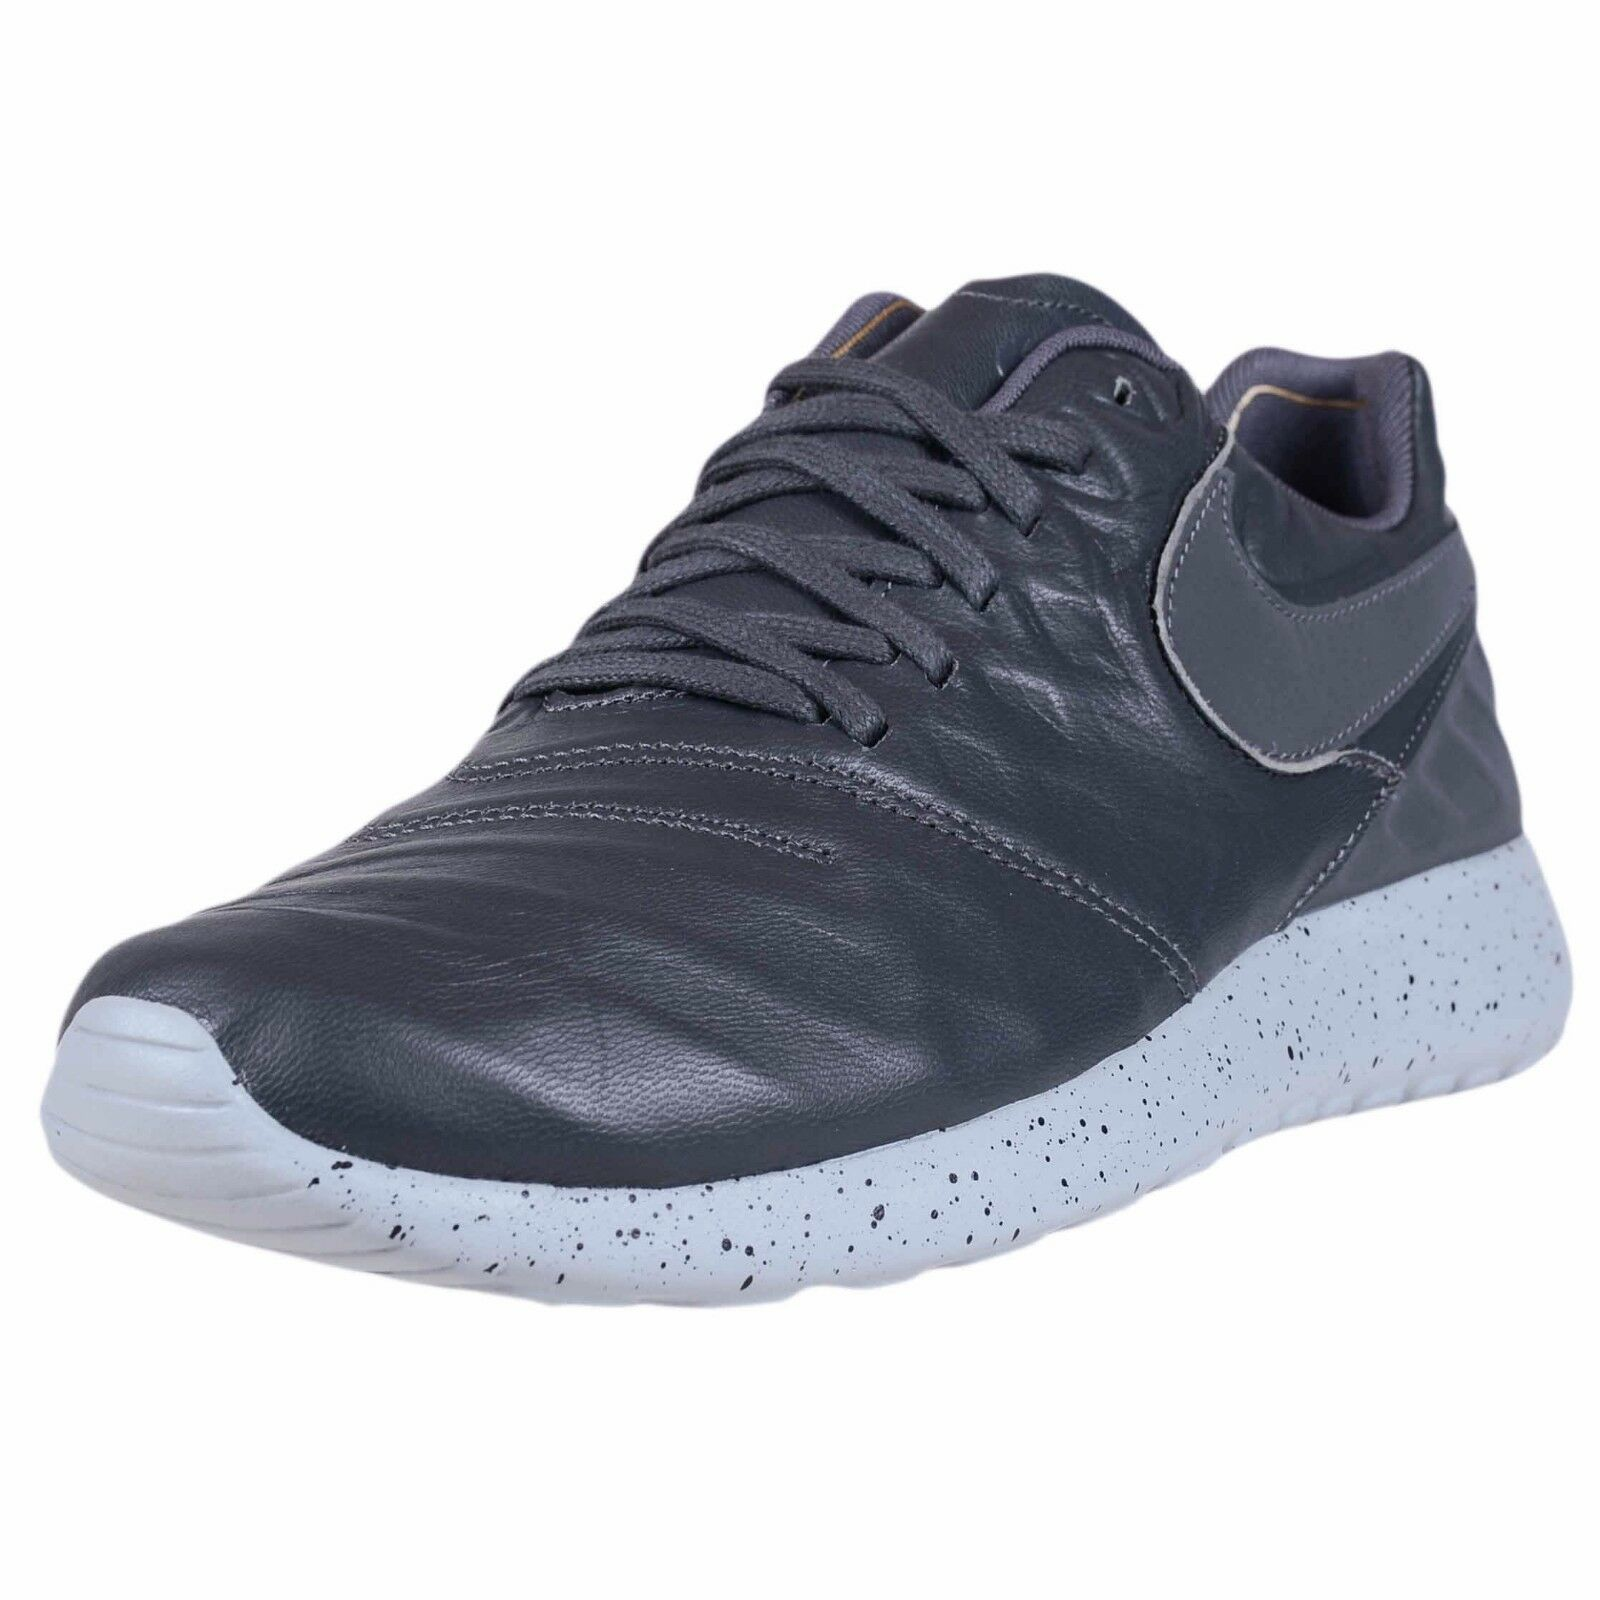 NIKE ROSHE TIEMPO VI WOLF GREY Uomo LEATHER SOCCER FASHION SHOES 852615 002